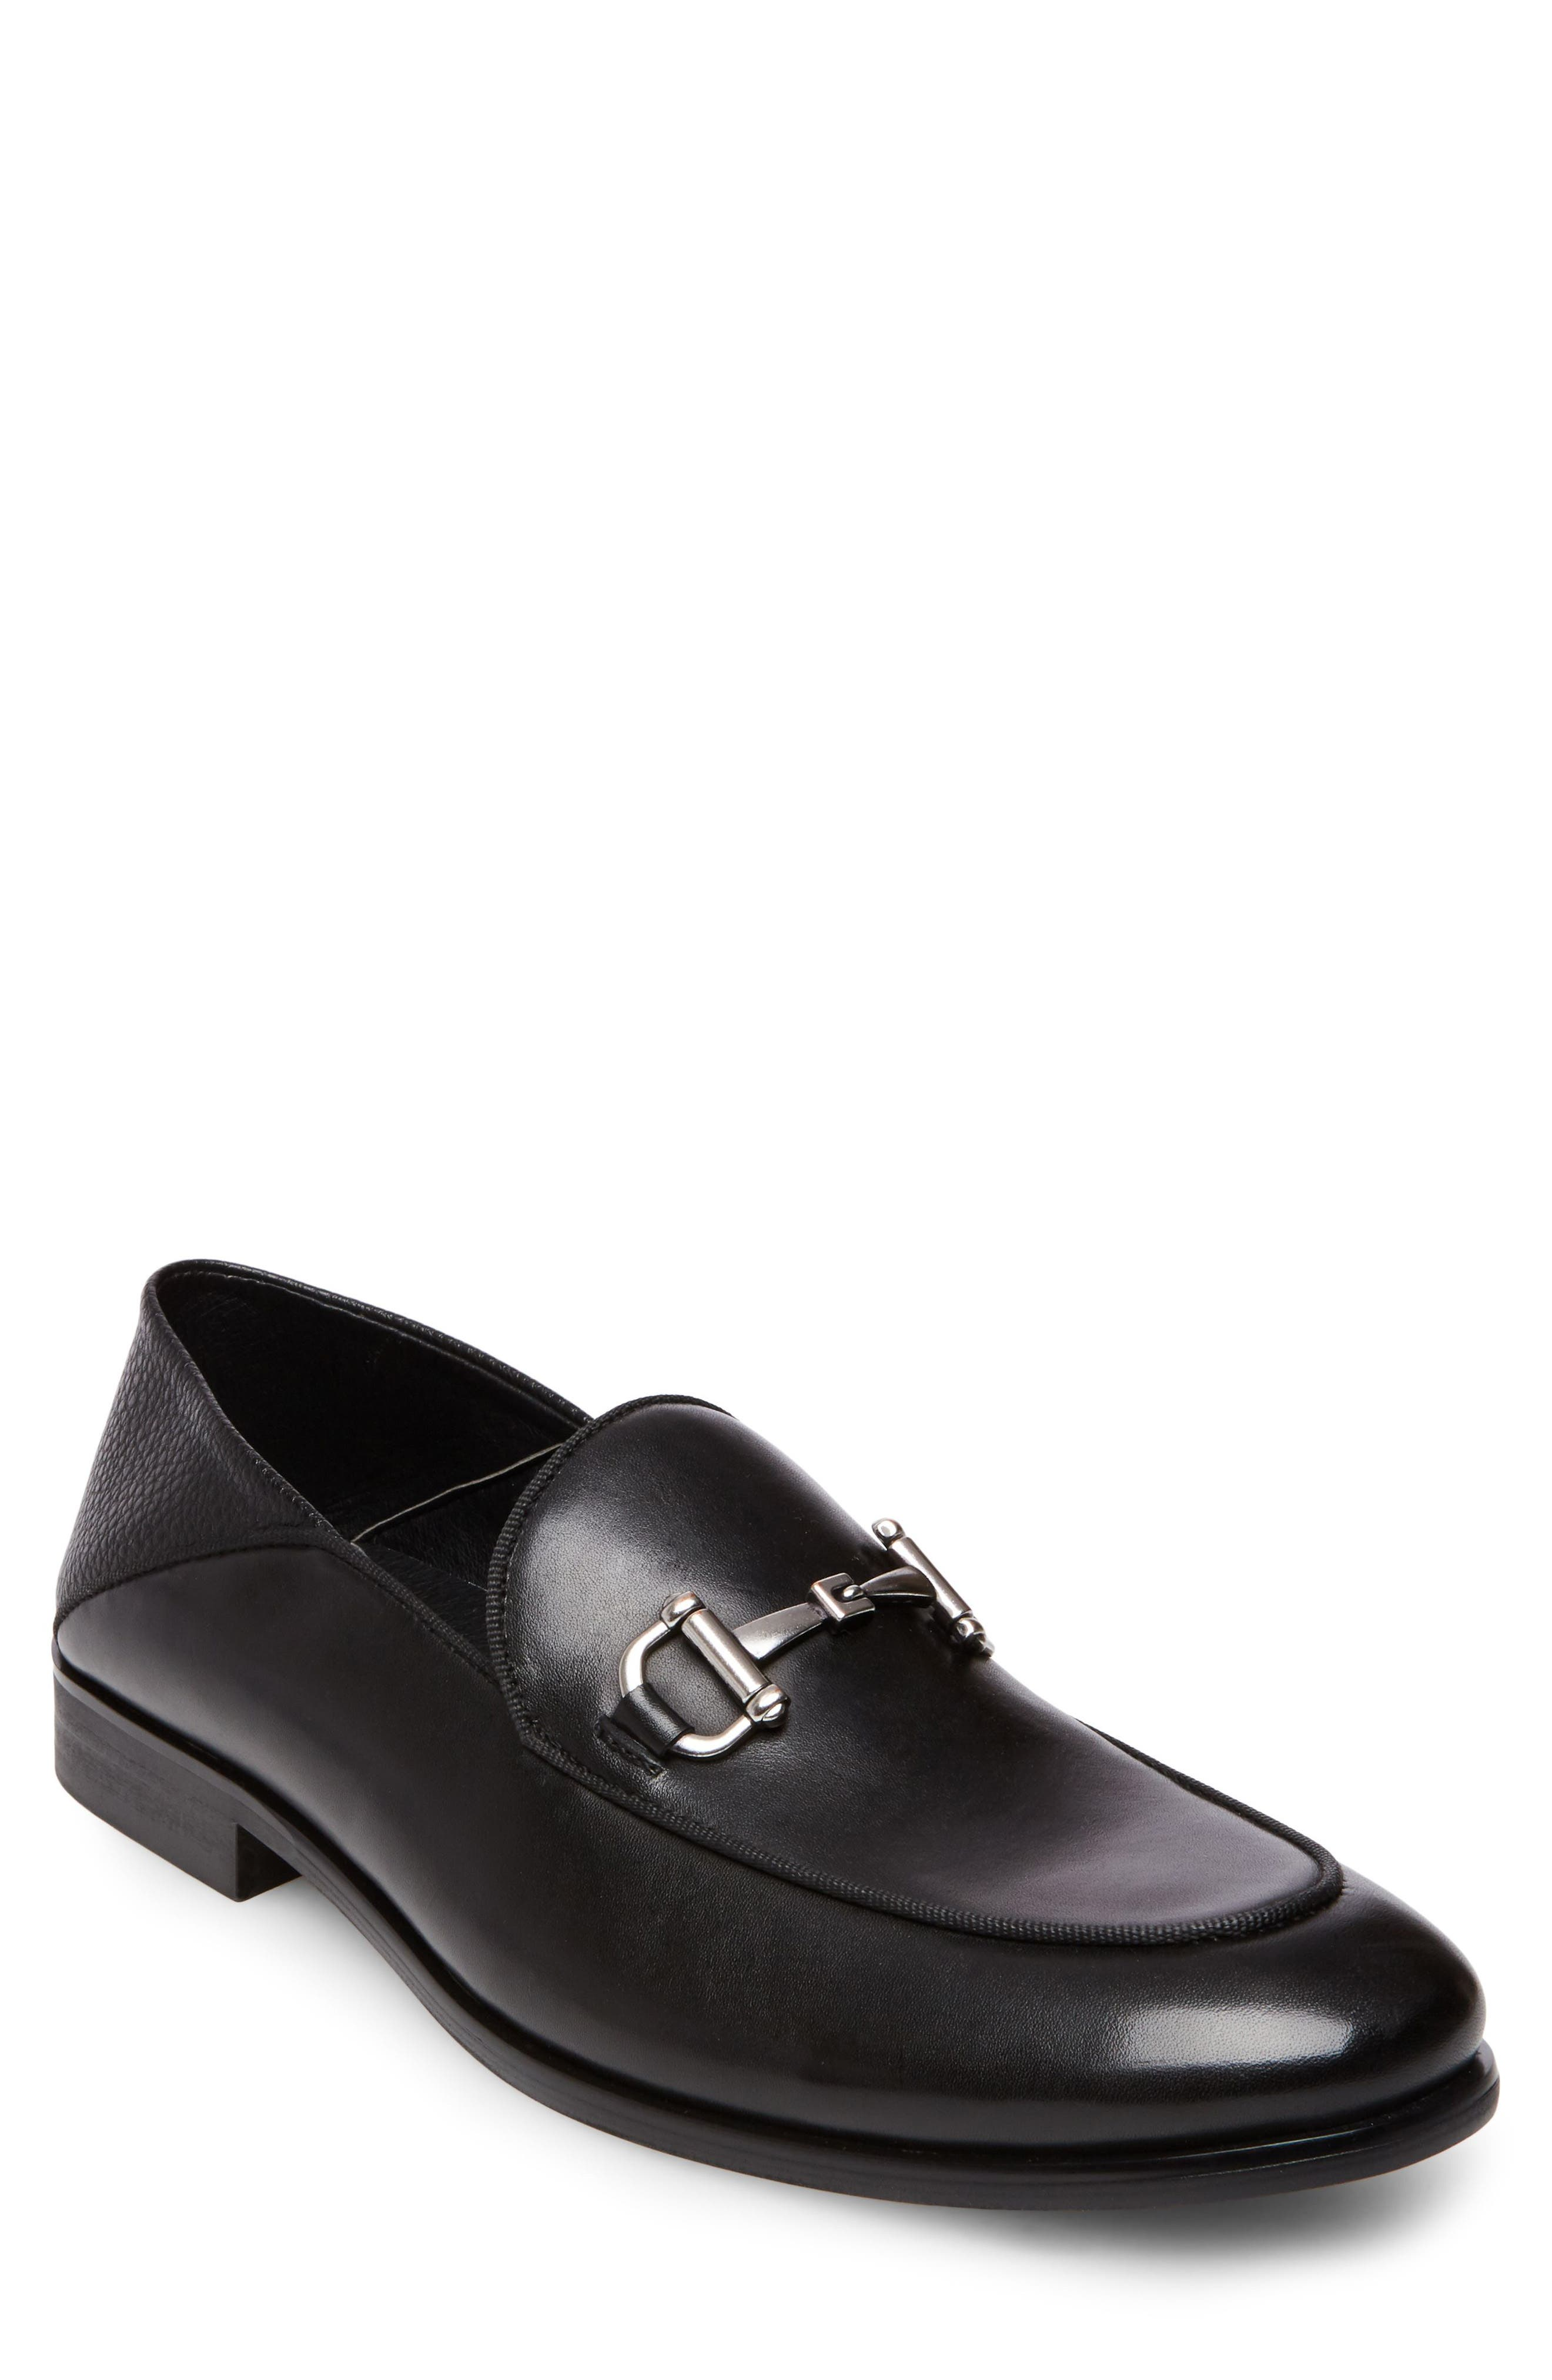 Sauce Bit Collapsible Loafer,                         Main,                         color,